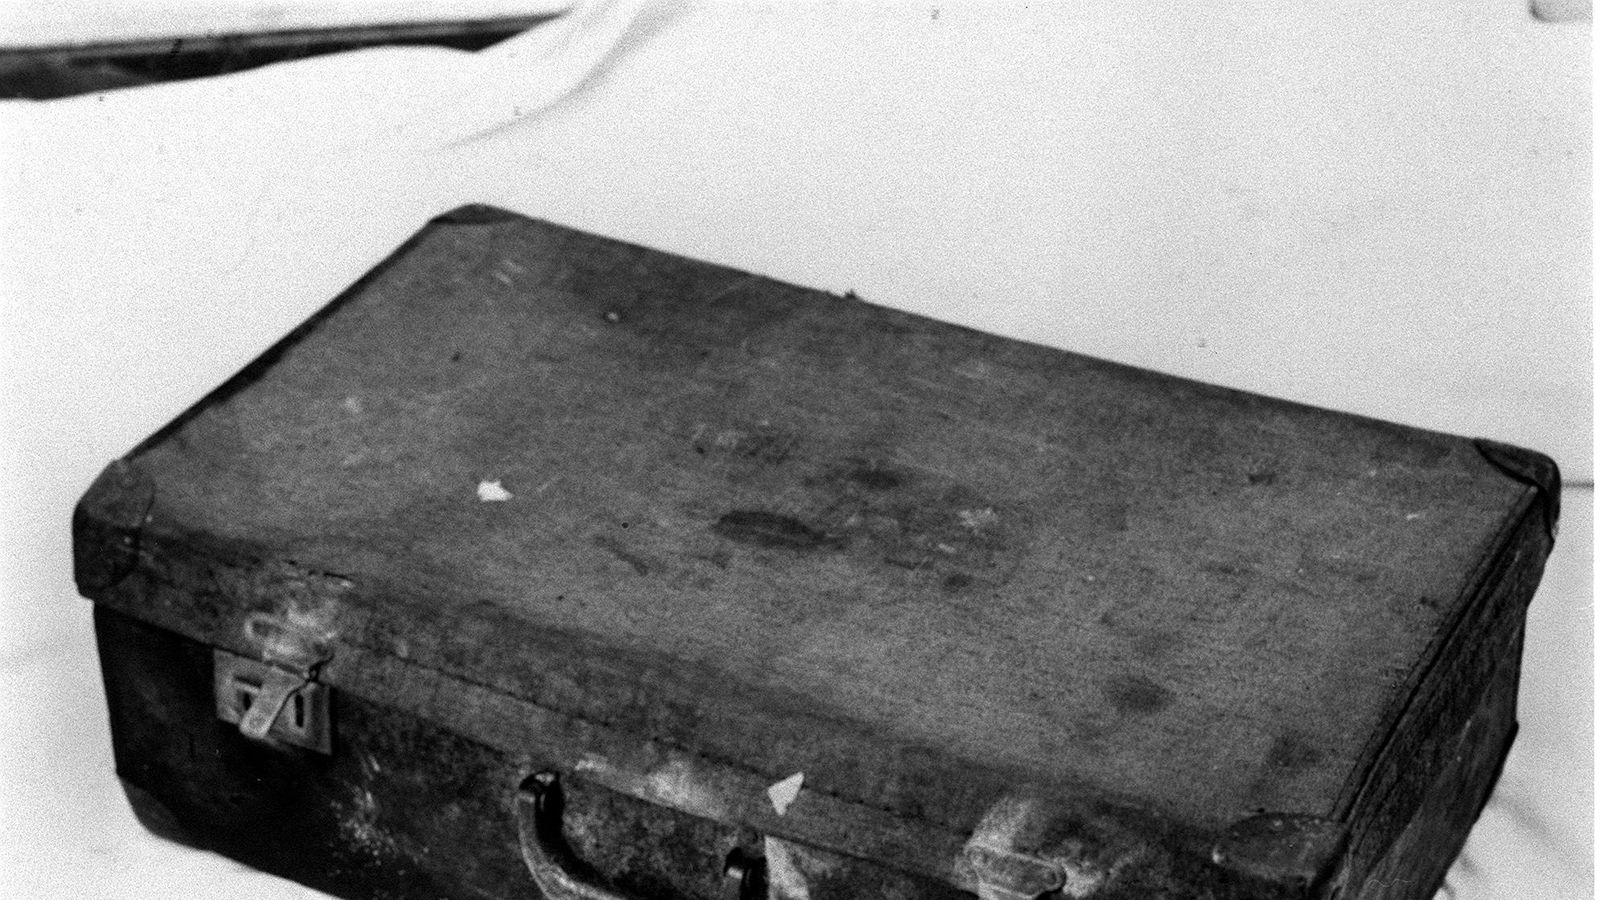 The boy in the box - a terrible mystery unsolved